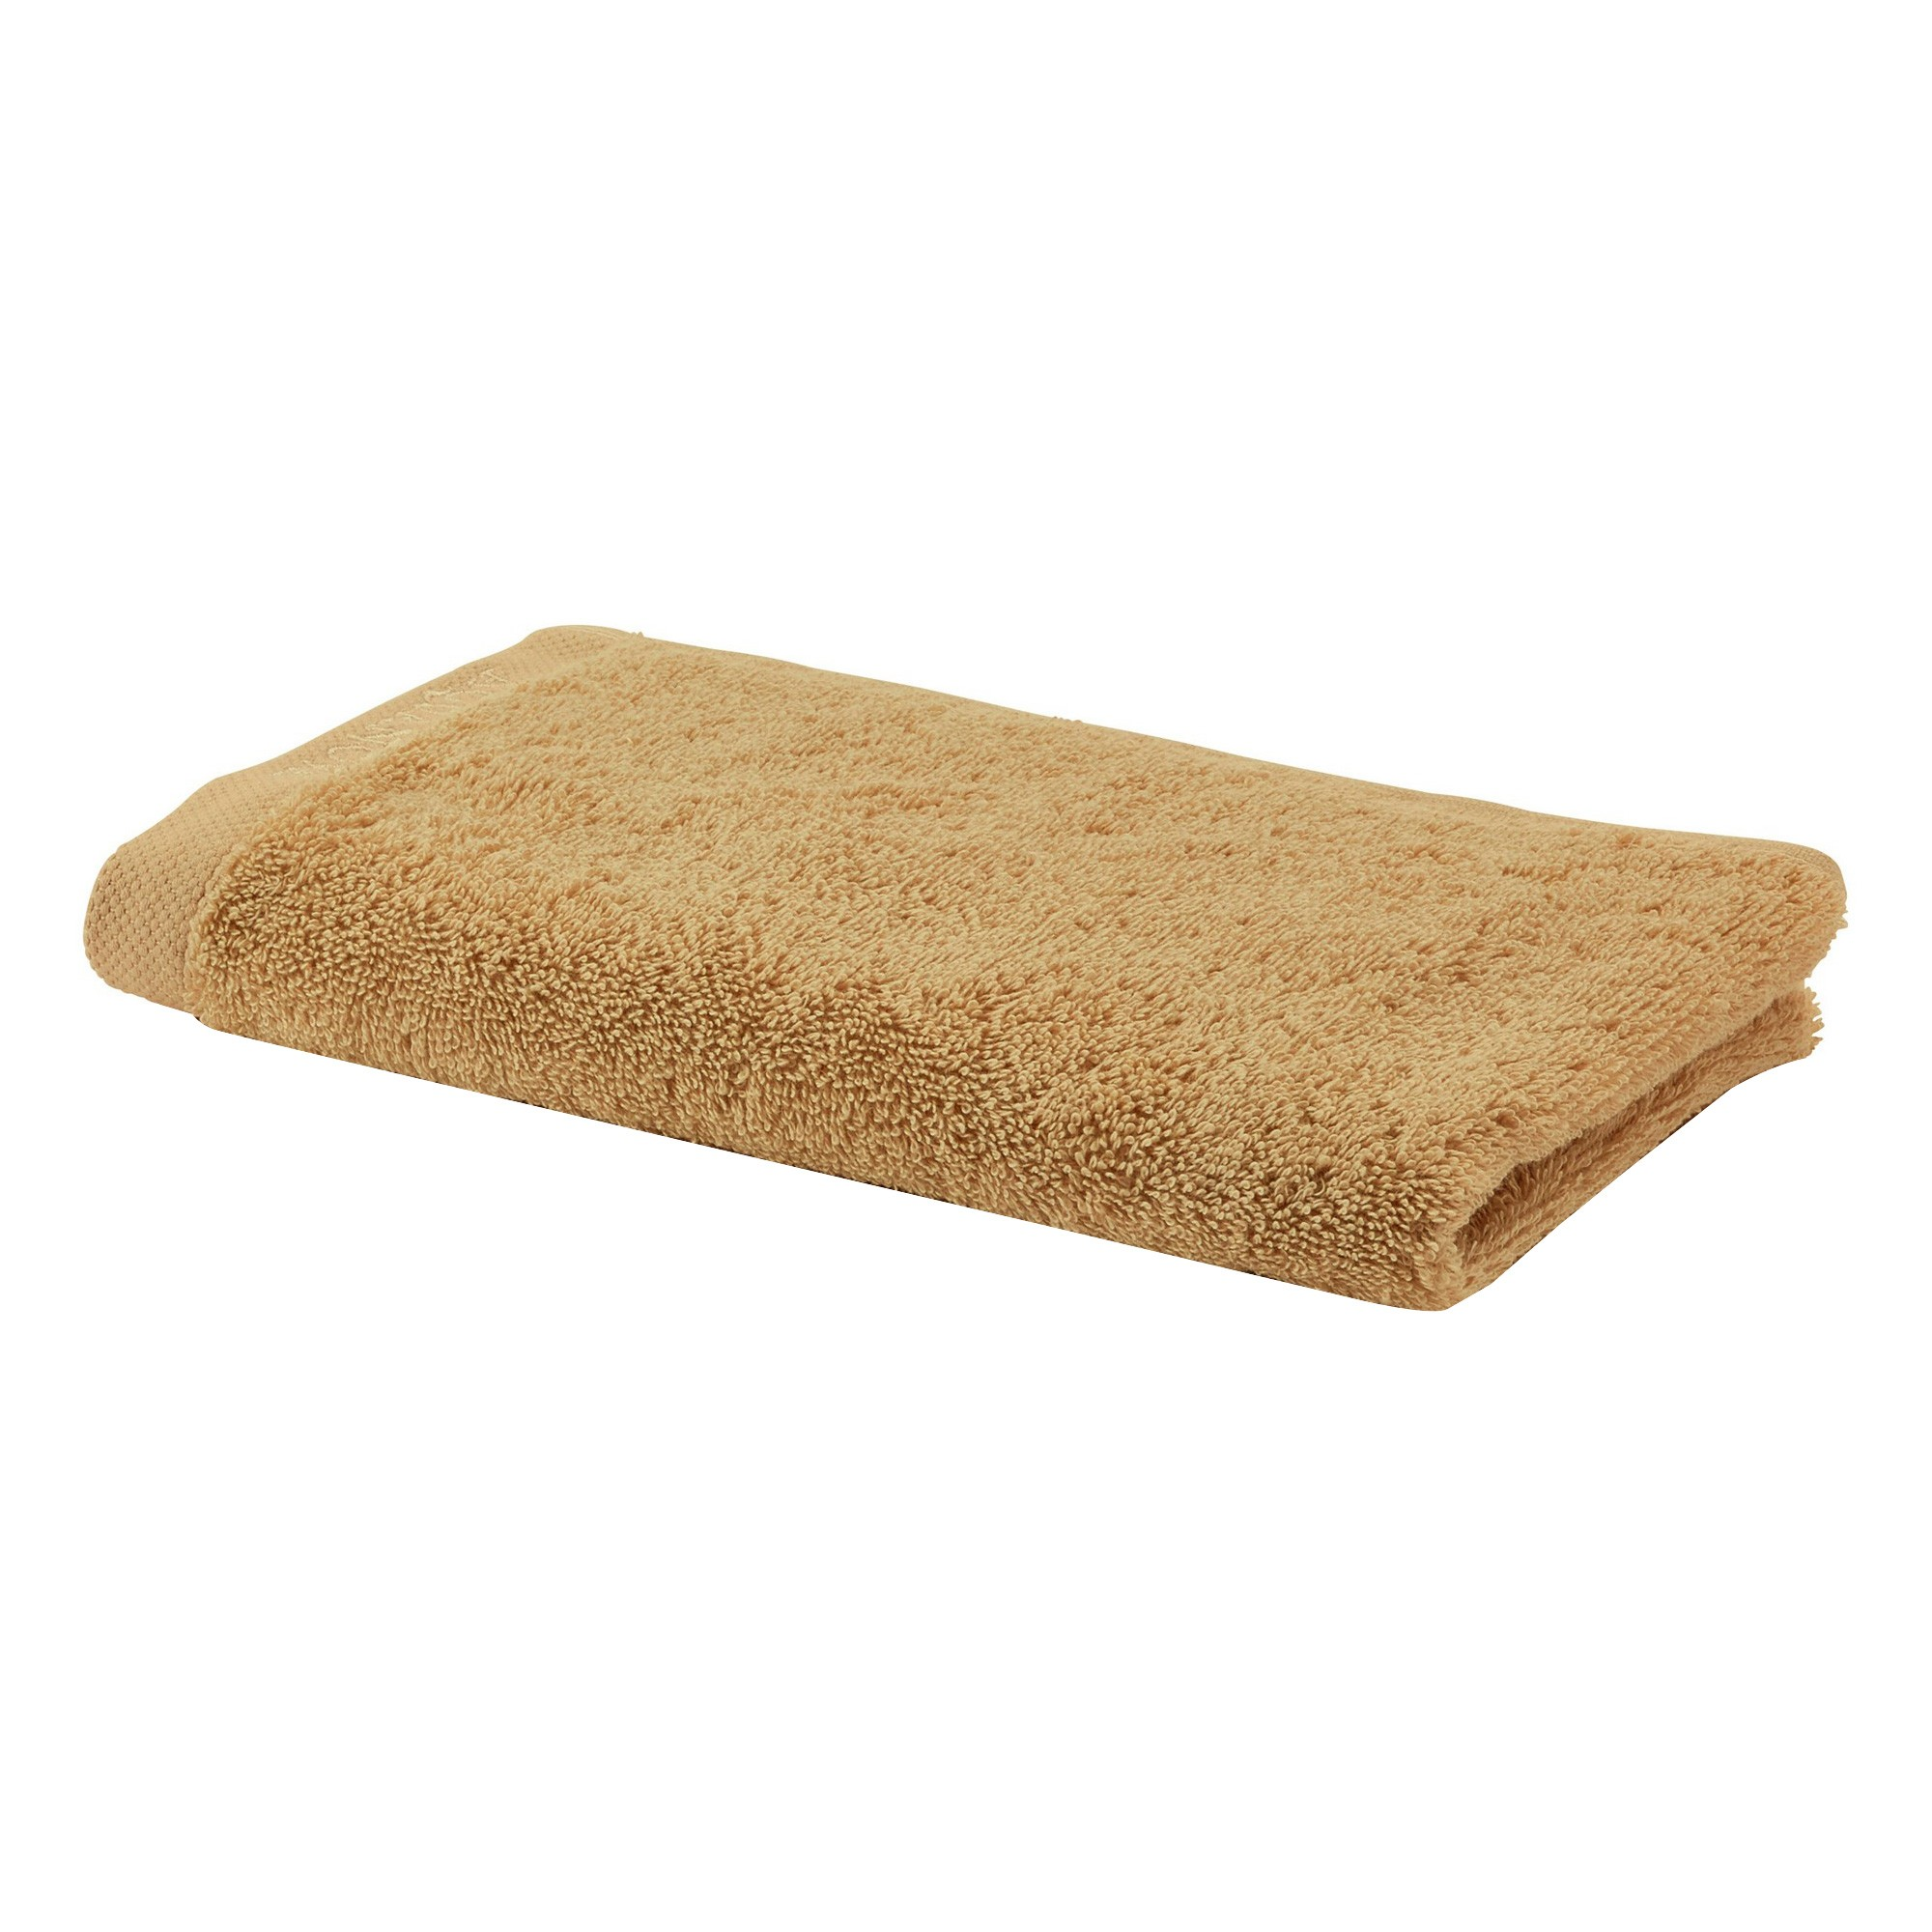 Aquanova London Egyptian Cotton Guest Towel, Ochre